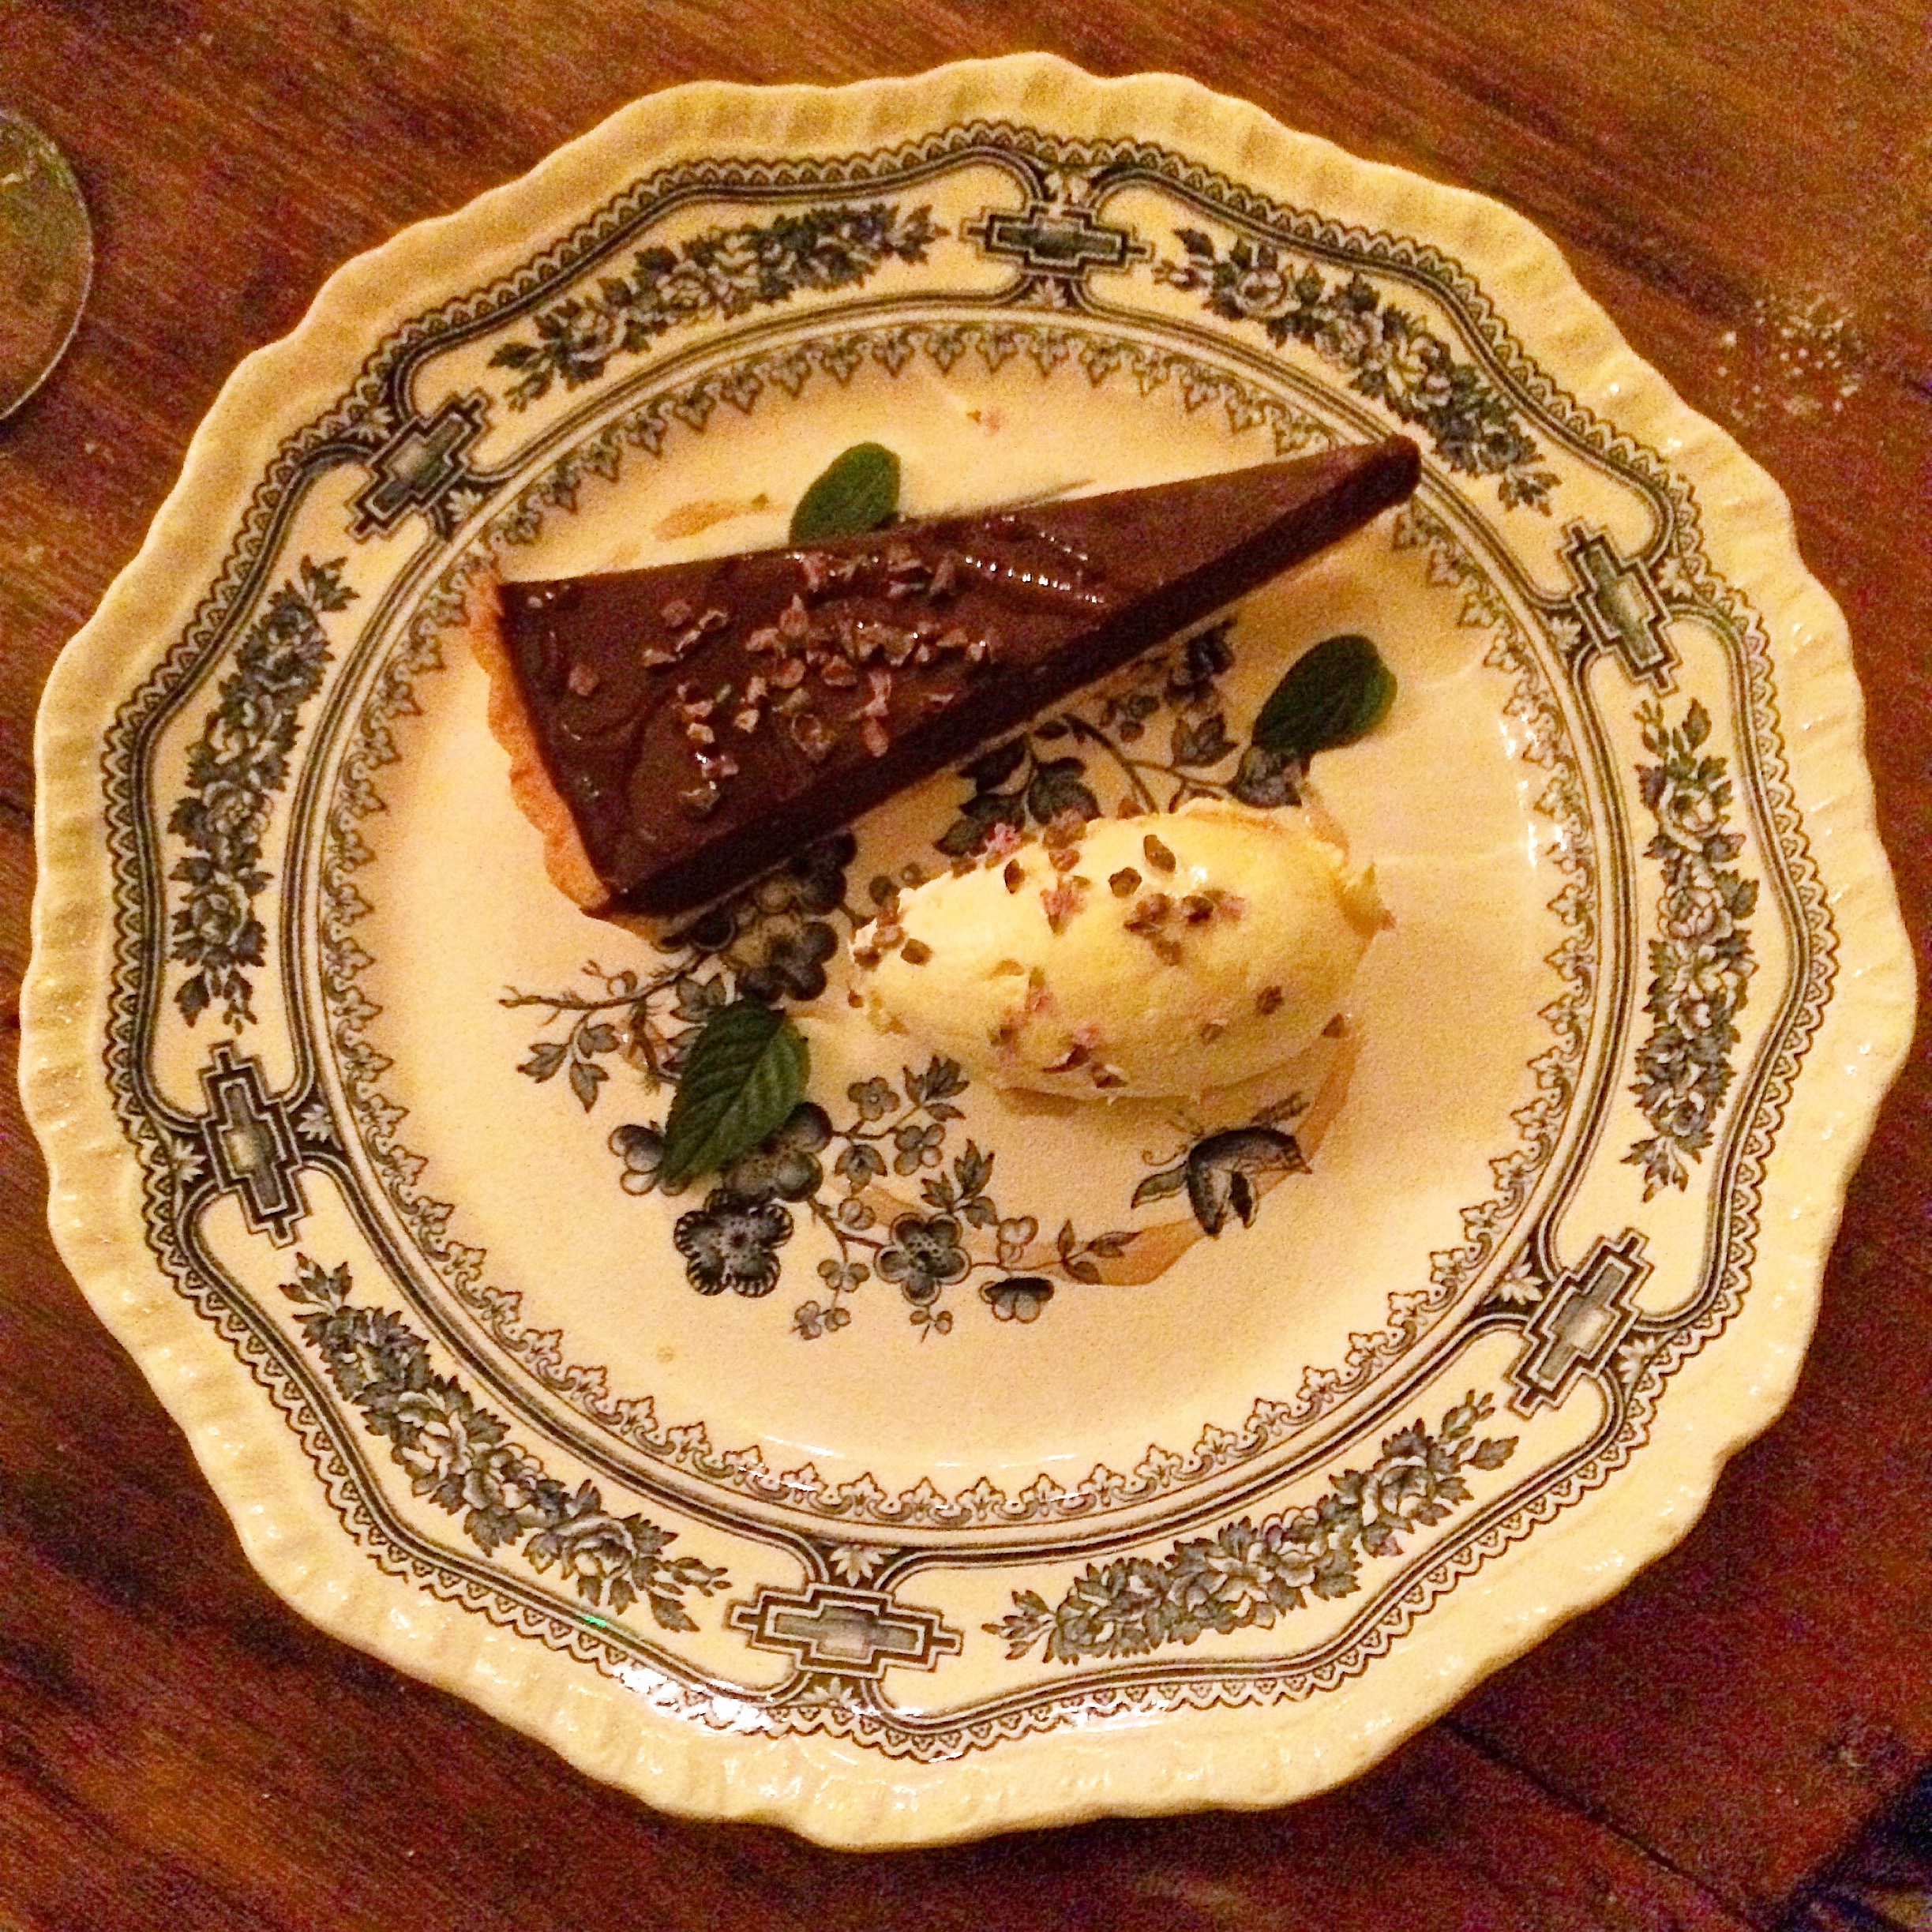 Mint chocolate tart at The Pig at Combe